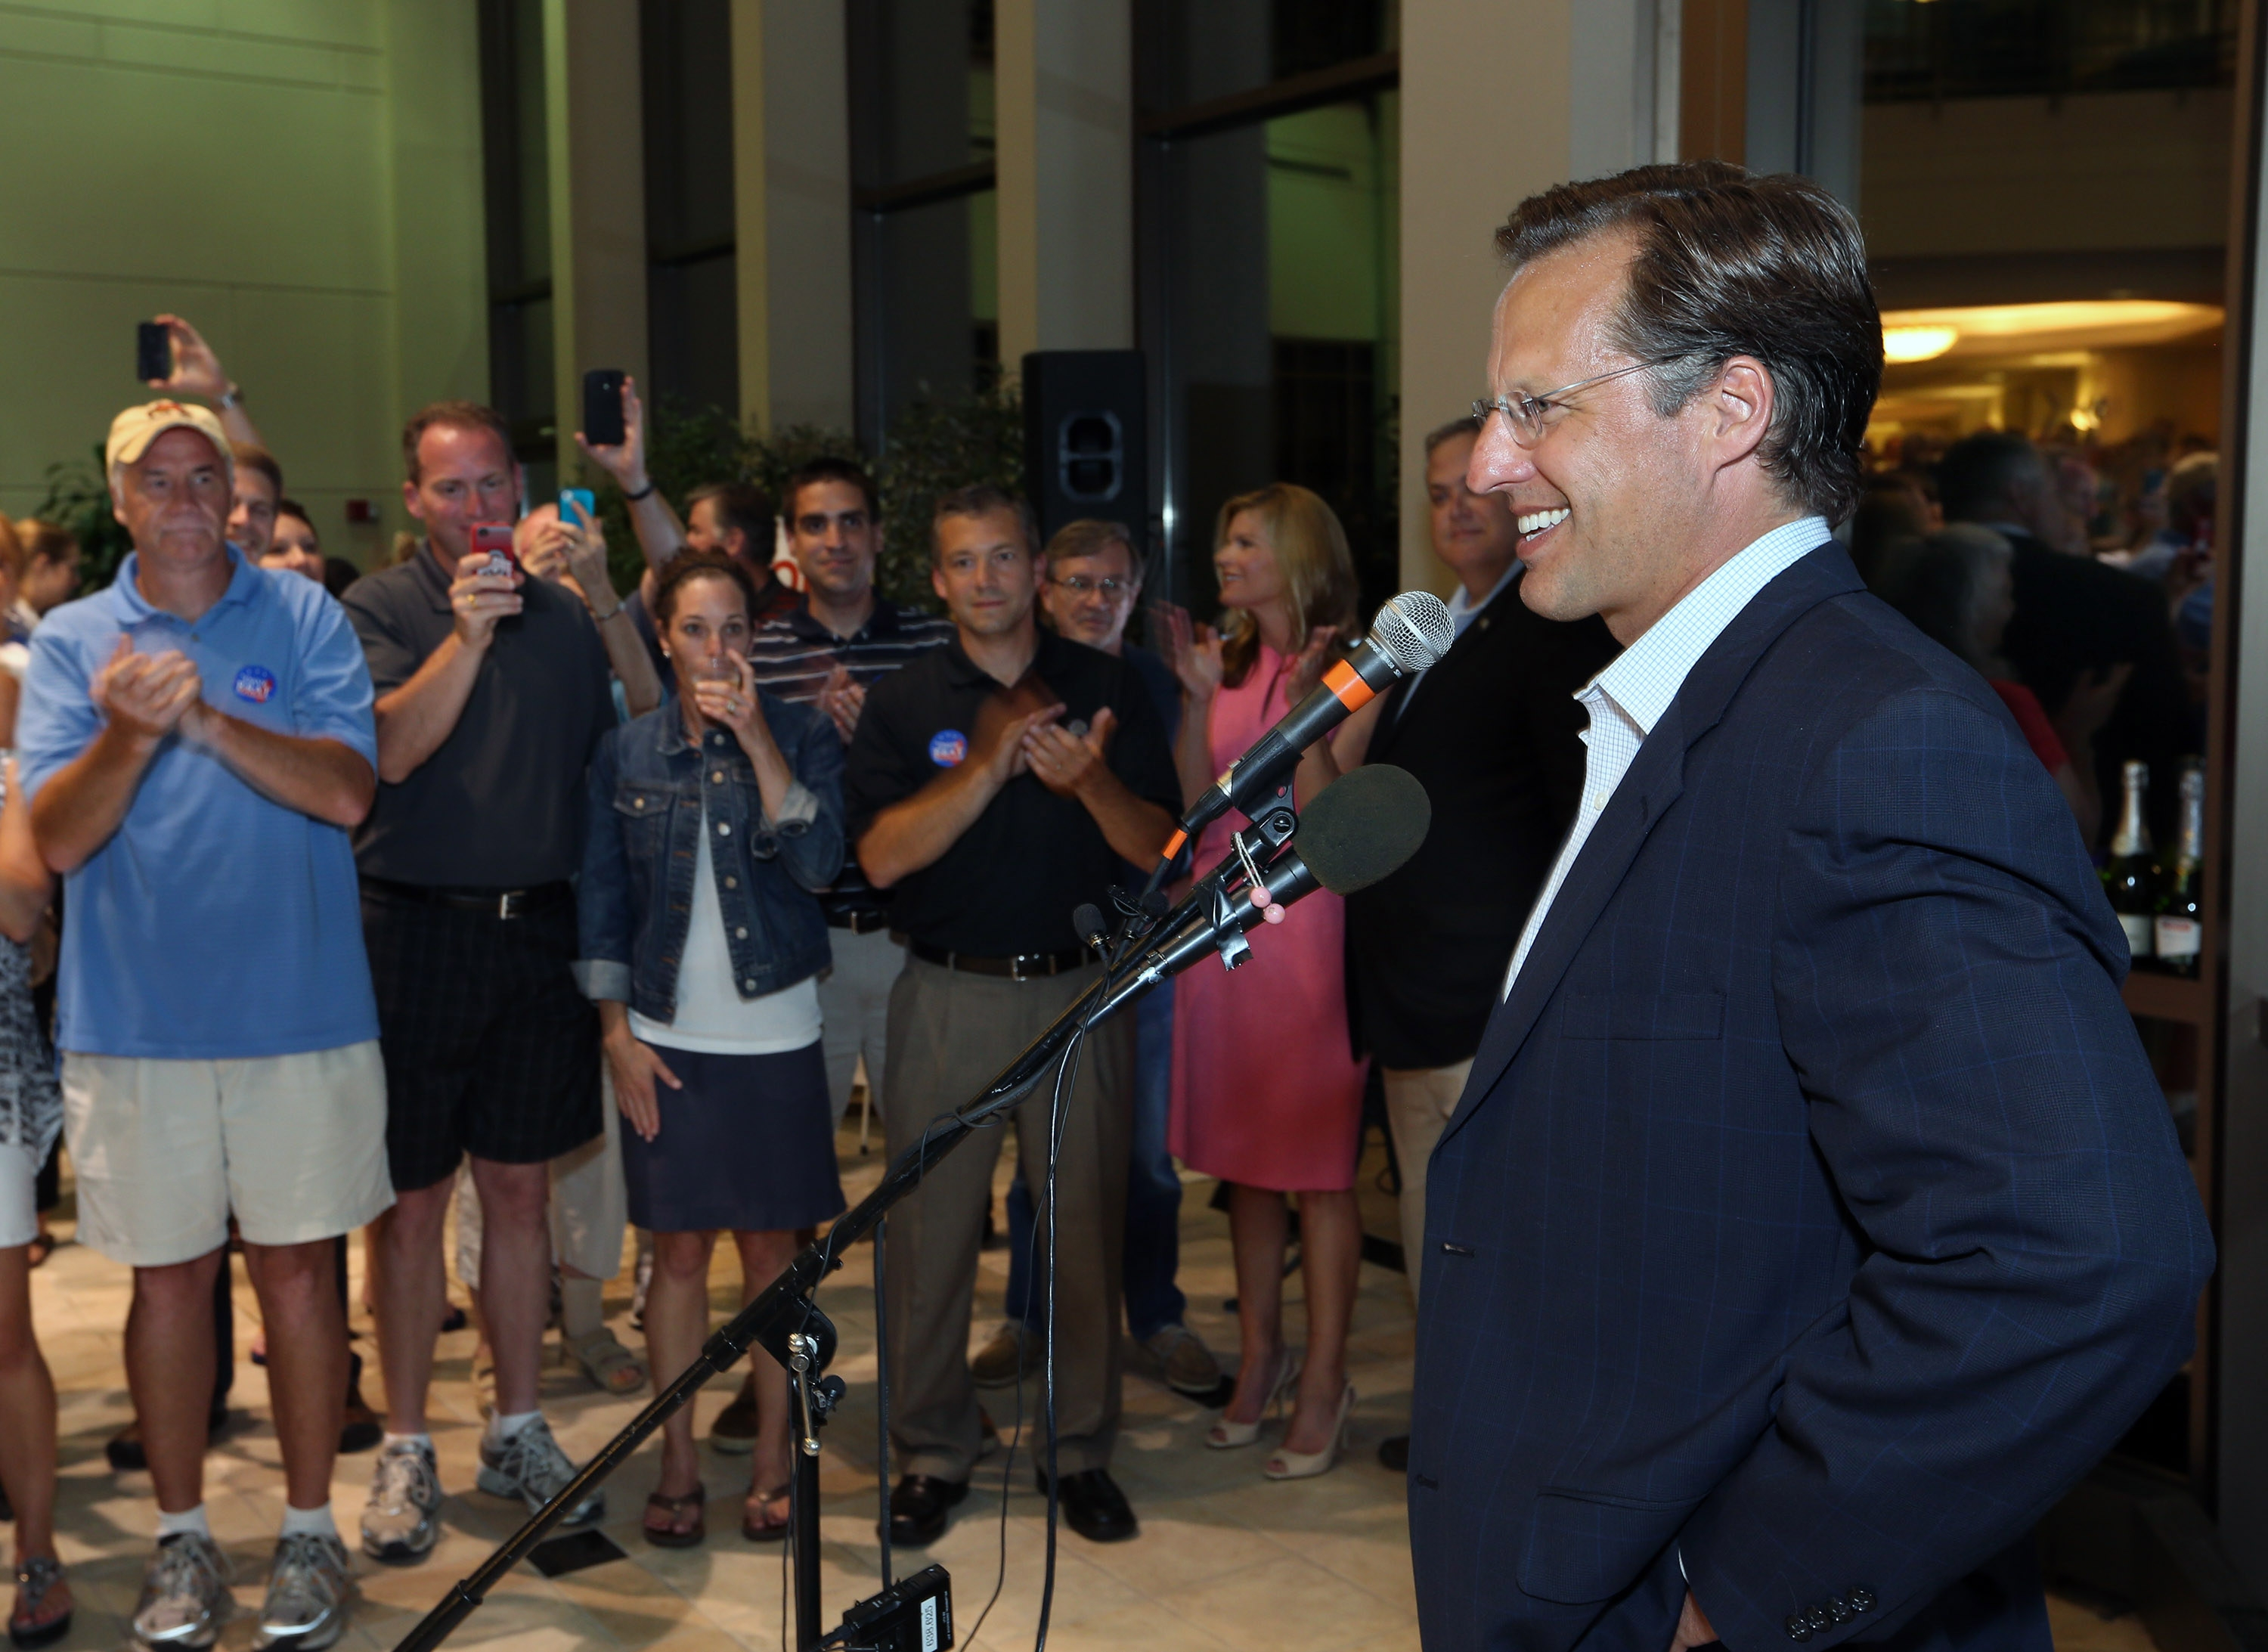 Dave Brat speaks to supporters after defeating Republican Rep. Eric Cantor in Tuesday's Republican primary in Virginia. (Associated Press)